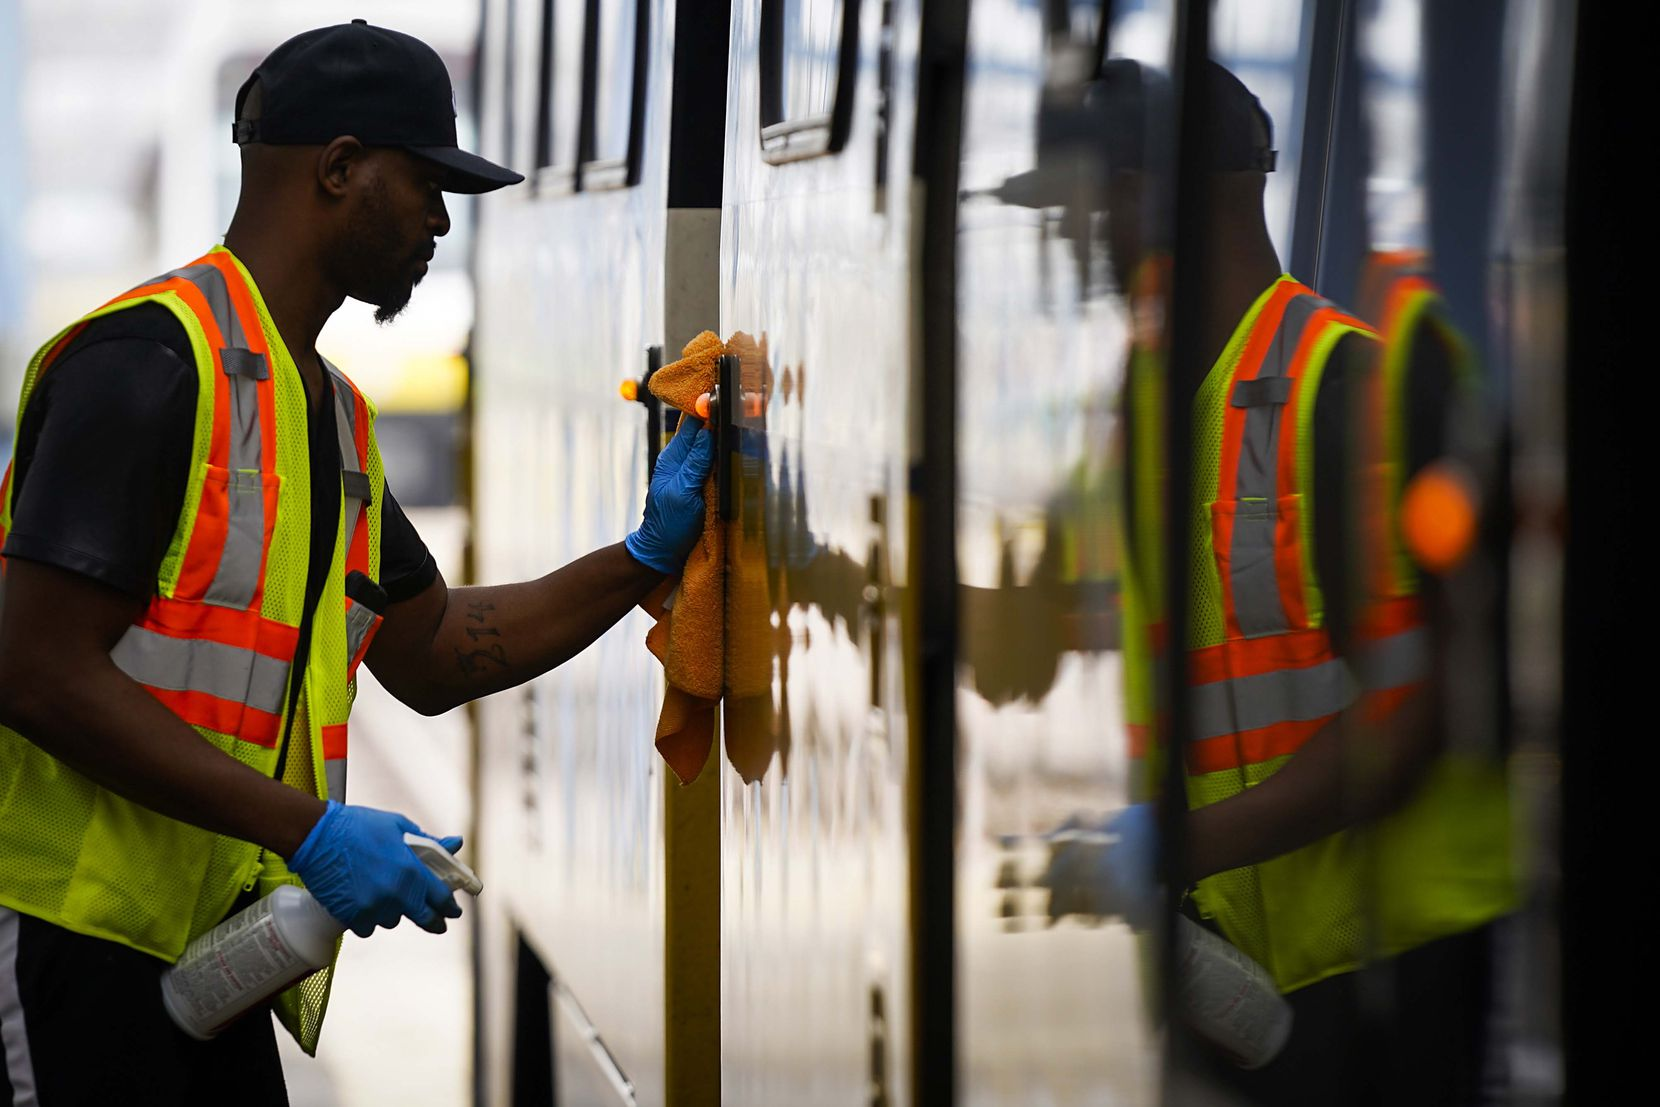 Michael Beck wipes down push buttons with disinfectant as he cleans a DART rail train at the the transit authority's Central Rail Operating Facility on Tuesday, March 17, 2020, in Dallas. Due to coronavirus concerns, the once-daily regular cleaning of the trains has been increased to three times per day, with particular emphasis on high touch areas.